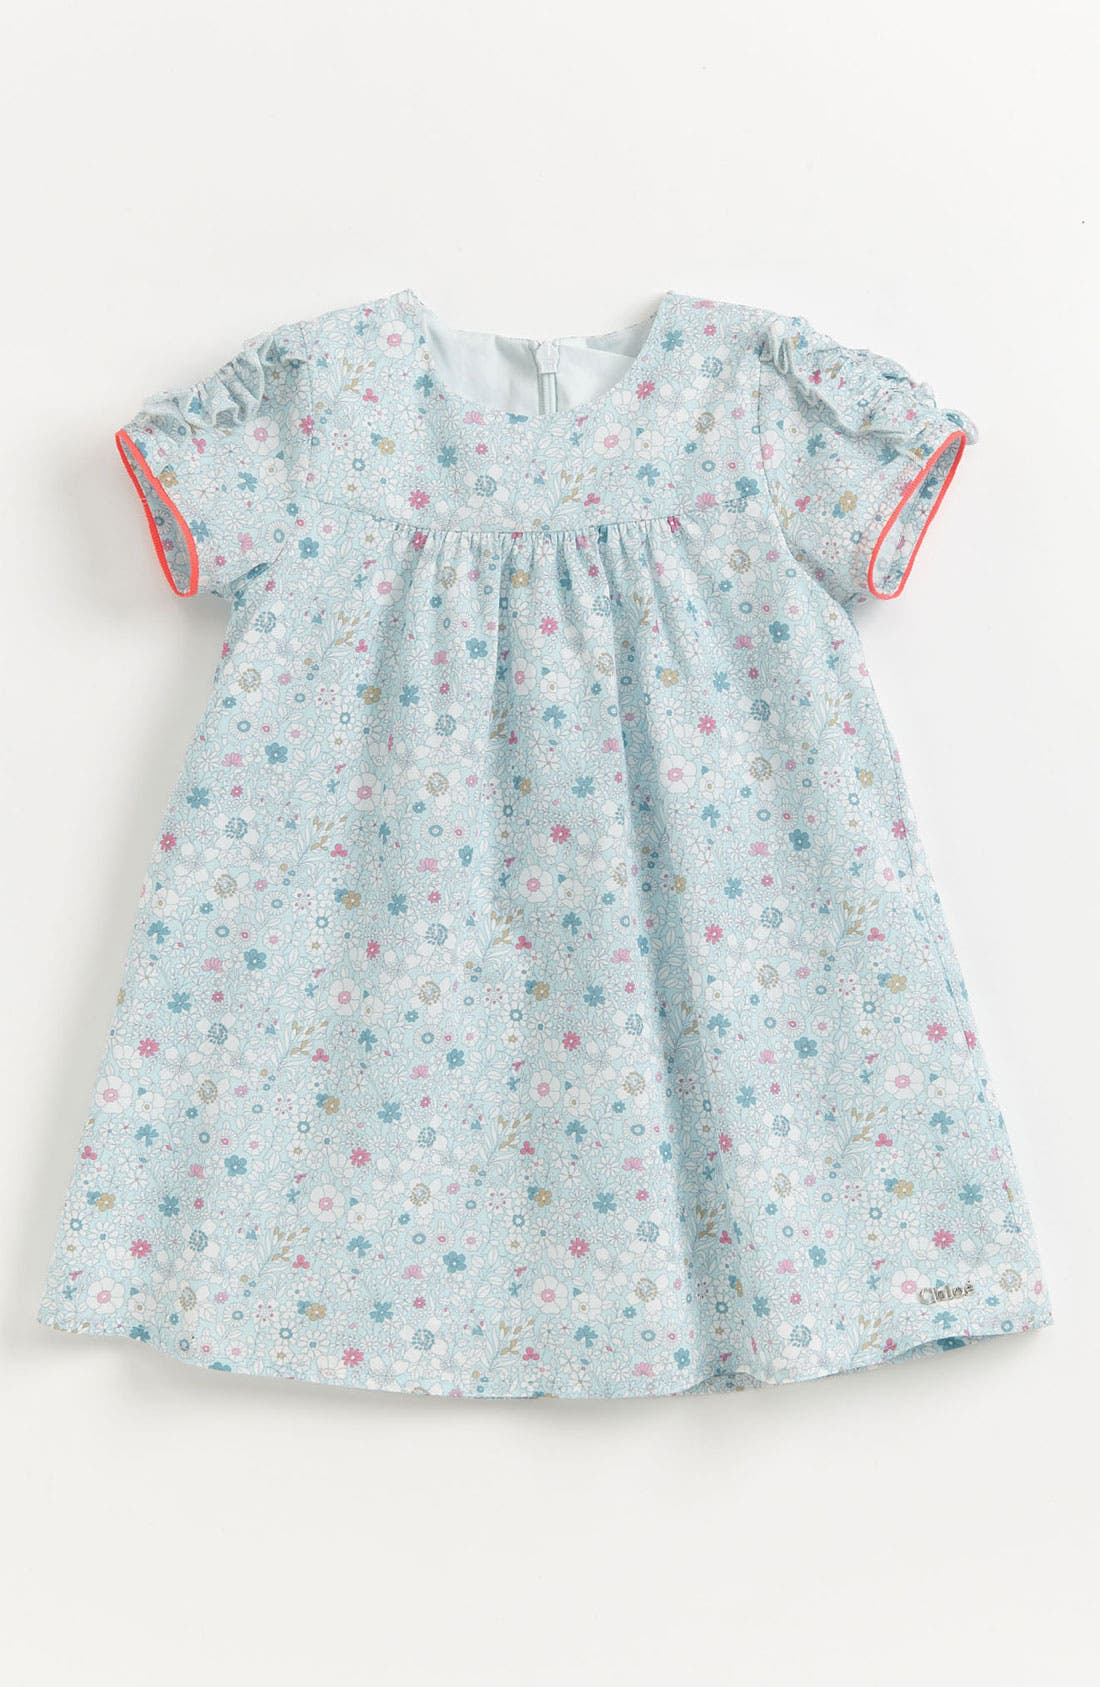 Alternate Image 1 Selected - Chloé 'Liberty Print' Floral Dress (Baby)